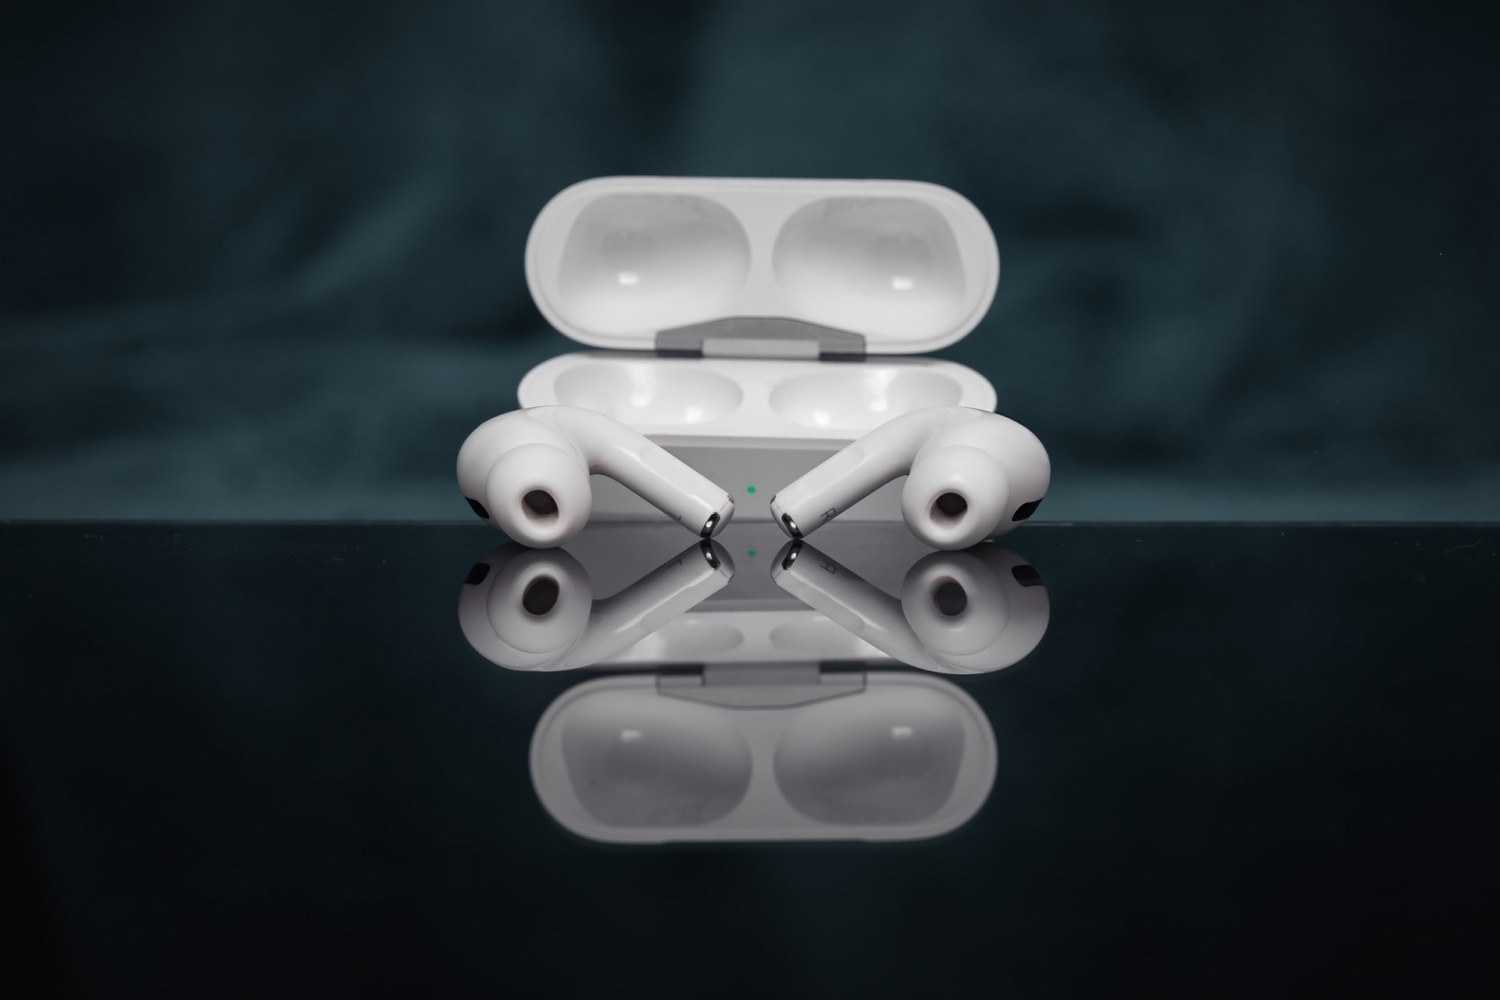 AirPods Pro 2 Release Date in 2021 Canceled? New Launch Date, Specs and More Leaks